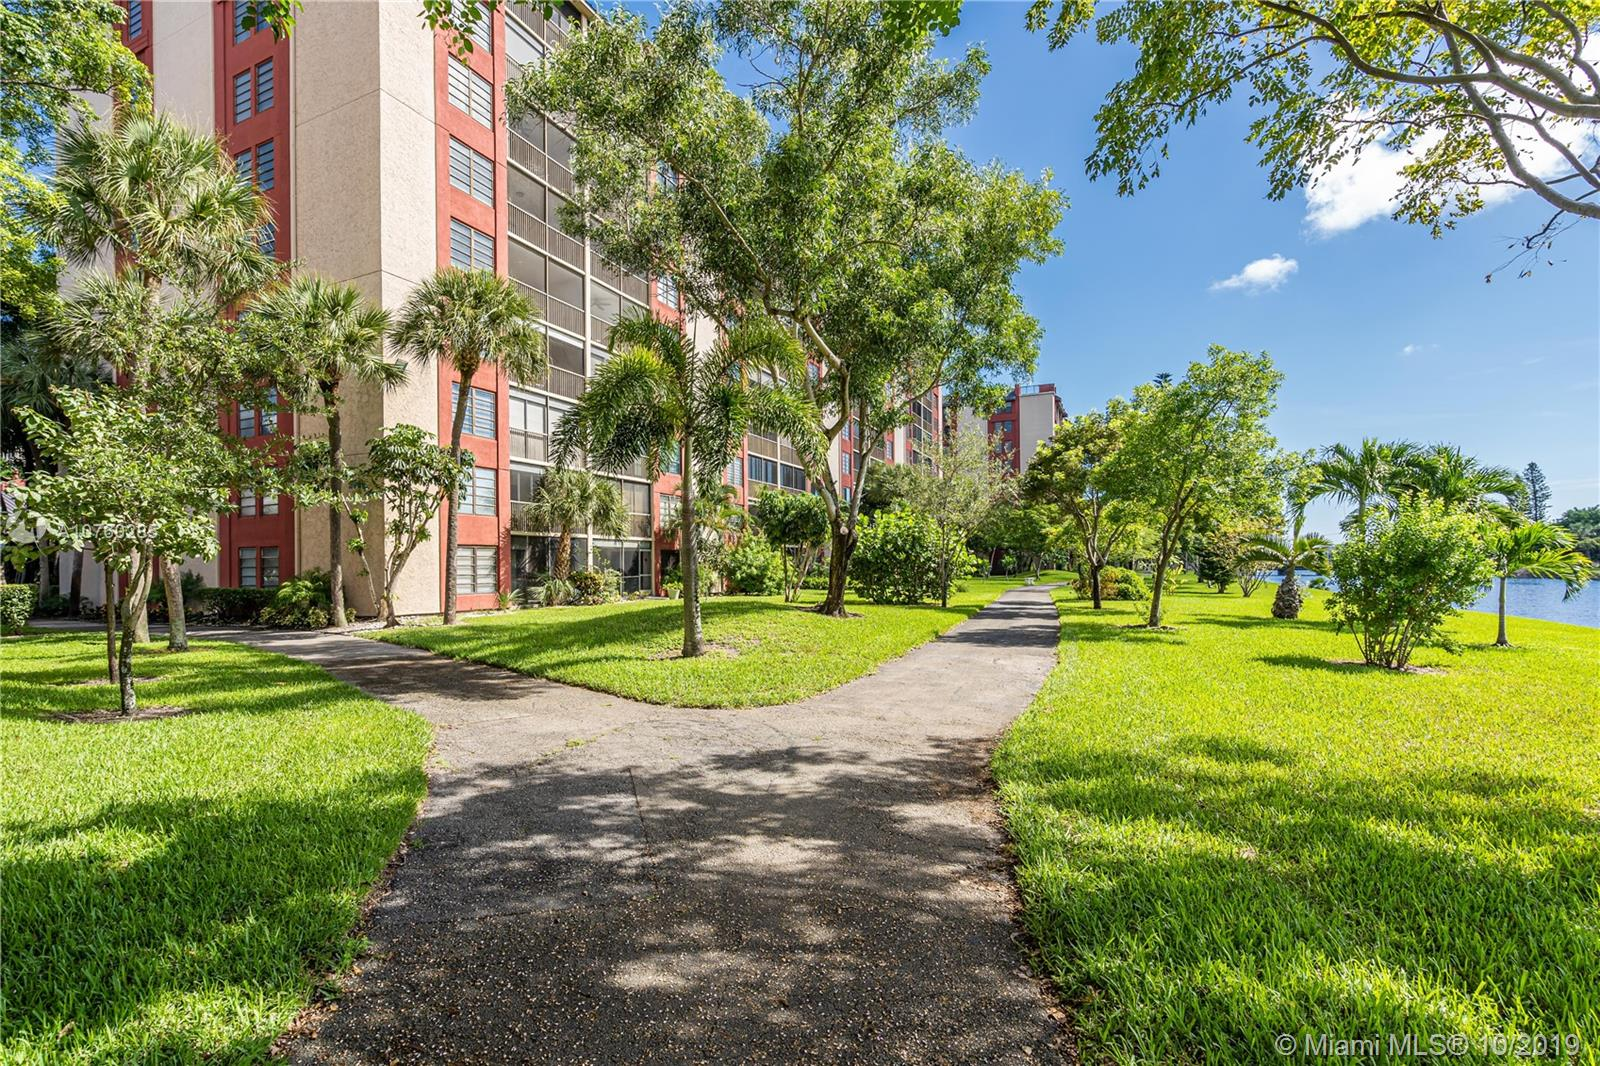 Bright, Immaculate and spacious 2 Bed & 2 Full Baths Condo on the 6th Floor of the highly sought Cypress Bend Community. Great CORNER Unit overlooking the canal and green areas. Ultra-Spacious Floor Plan includes a beautiful open eat-in kitchen with new Stainless-Steel Appliances. Tastefully painted, this Condo Features a bright open living area. Master Bedroom has TWO large walk-in closets and easy access to the screened balcony. Laundry Room Conveniently located inside the unit. Water and Cable included in the association fee. Amazing amenities including resort-like Pool, Club House, playground, tennis & racquetball courts, 2 gyms and more. Very close to the Isle Casino & Racing Pompano Park and a short ride to the Pompano Beach Arts Center. Paradise-Like Beaches are Just a Breeze Away.